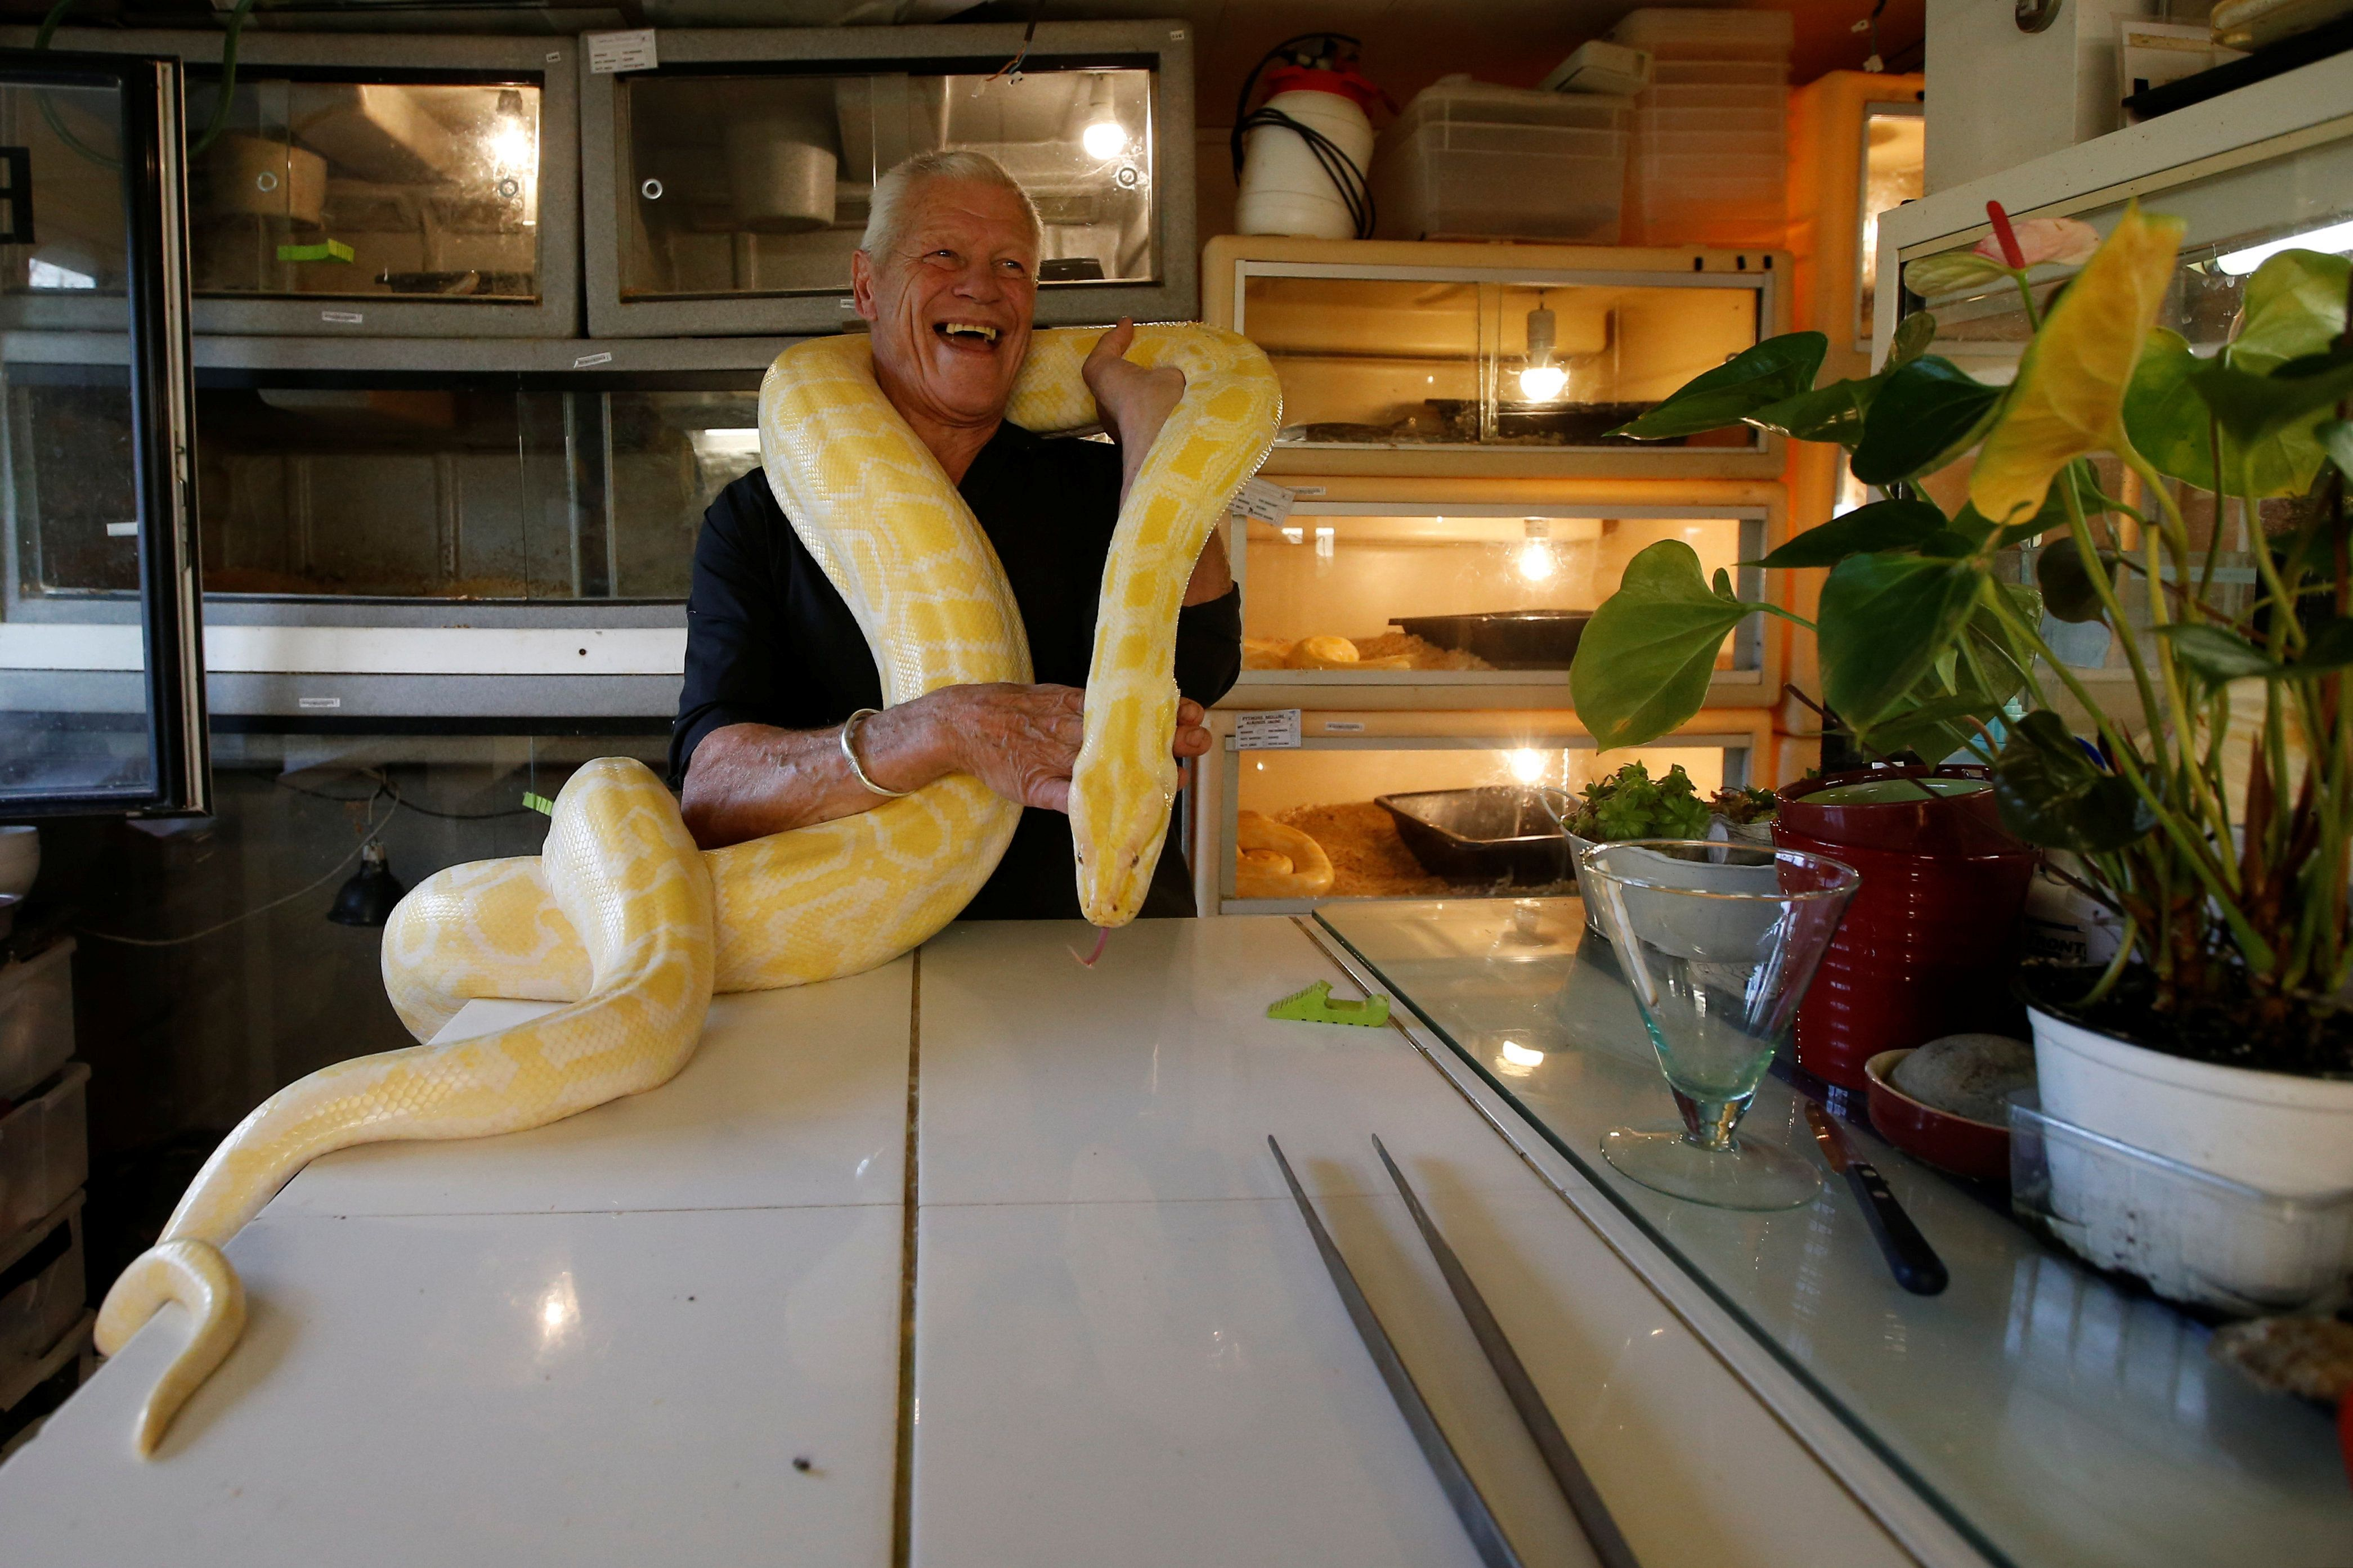 Frenchman Shares His Home With 400 Reptile Roommates